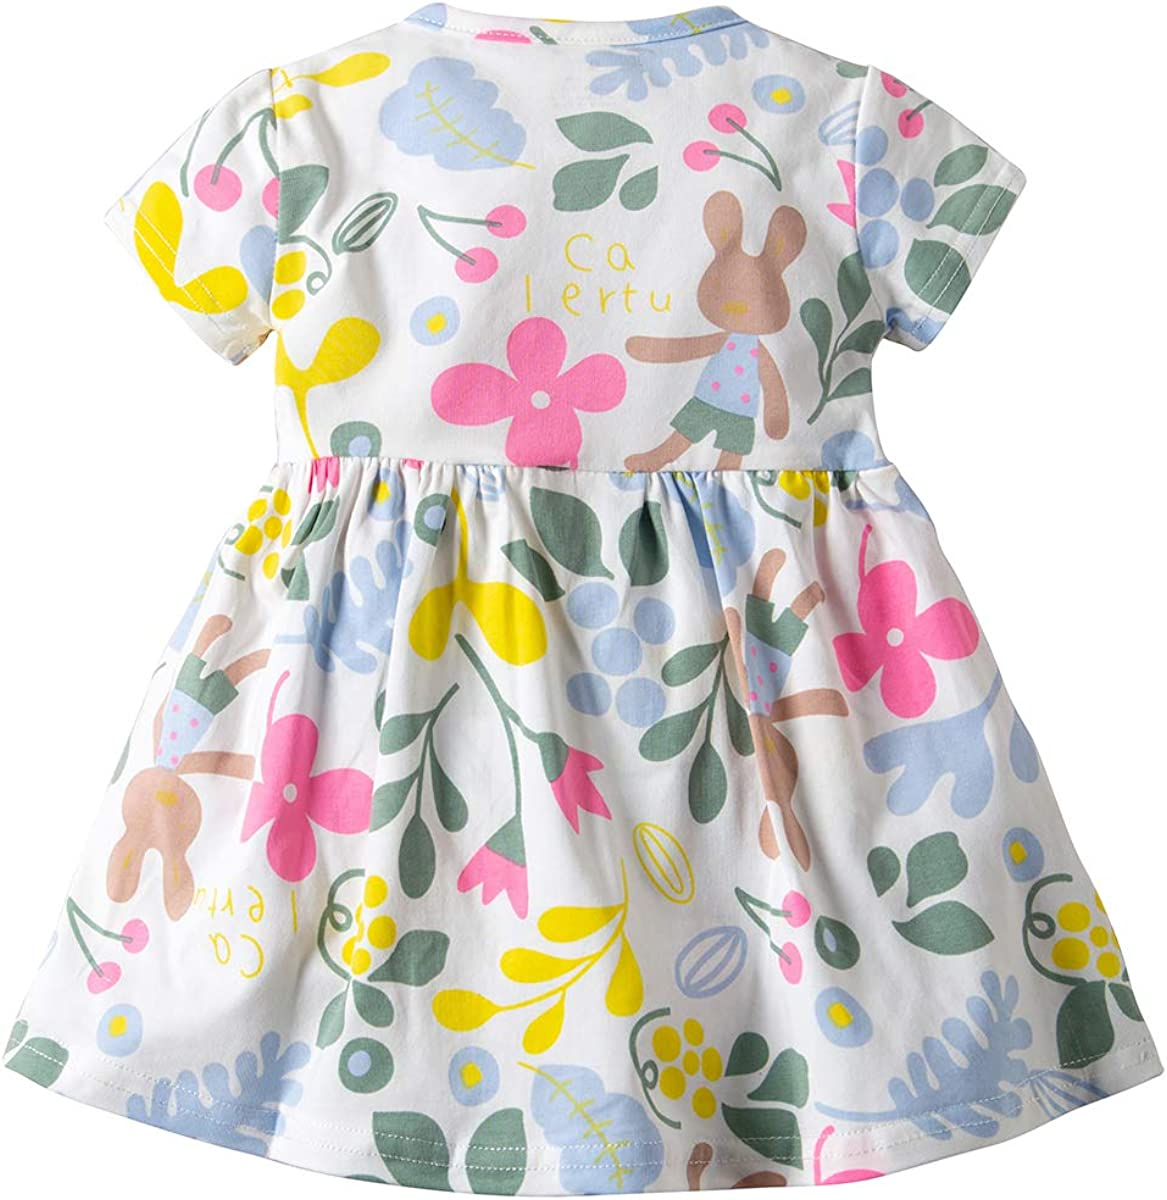 Newborn Baby Girls Infant Short Sleeve Rompers Jumsuit Bodysuit Outfits Clothes